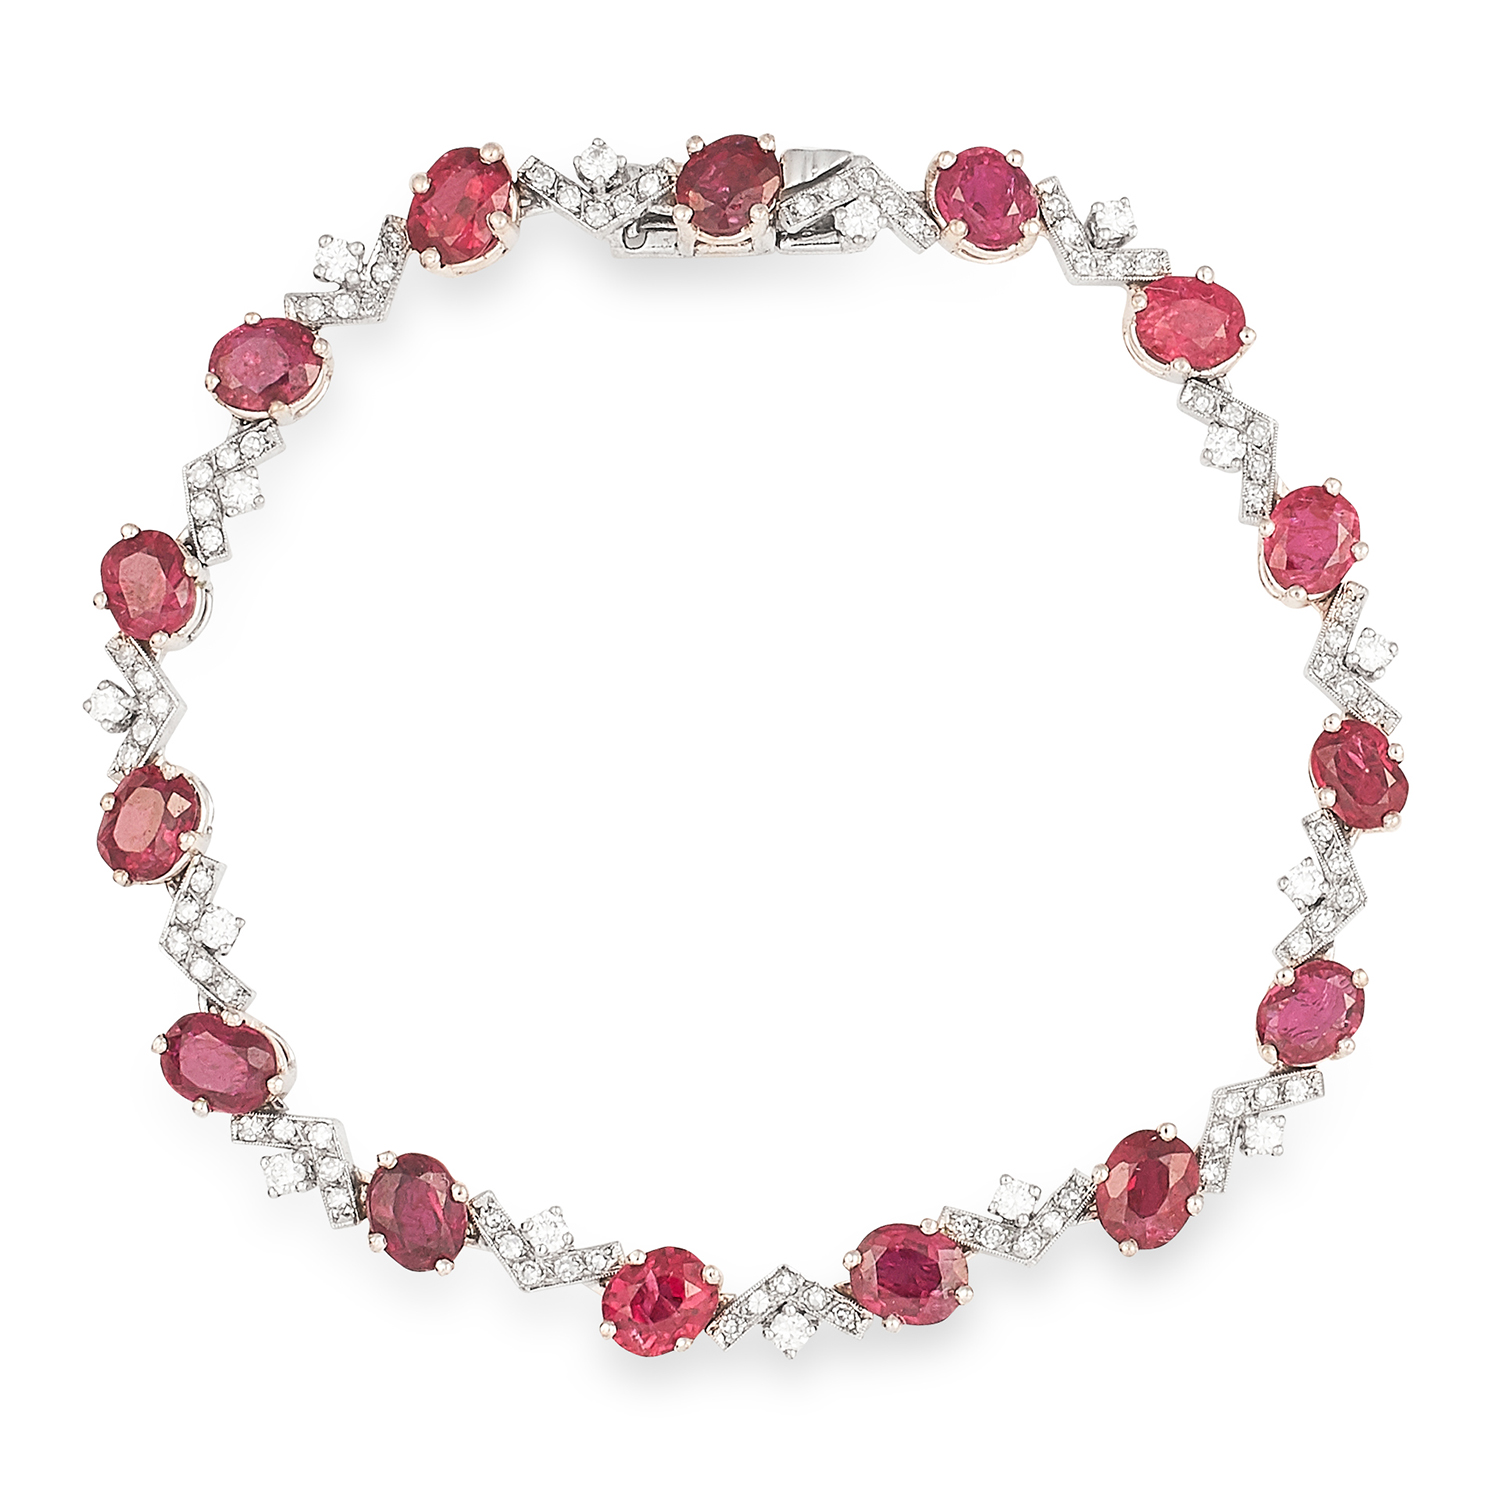 10.50 CARAT UNHEATED RUBY AND DIAMOND BRACELET in 18ct white gold or platinum, set with oval cut